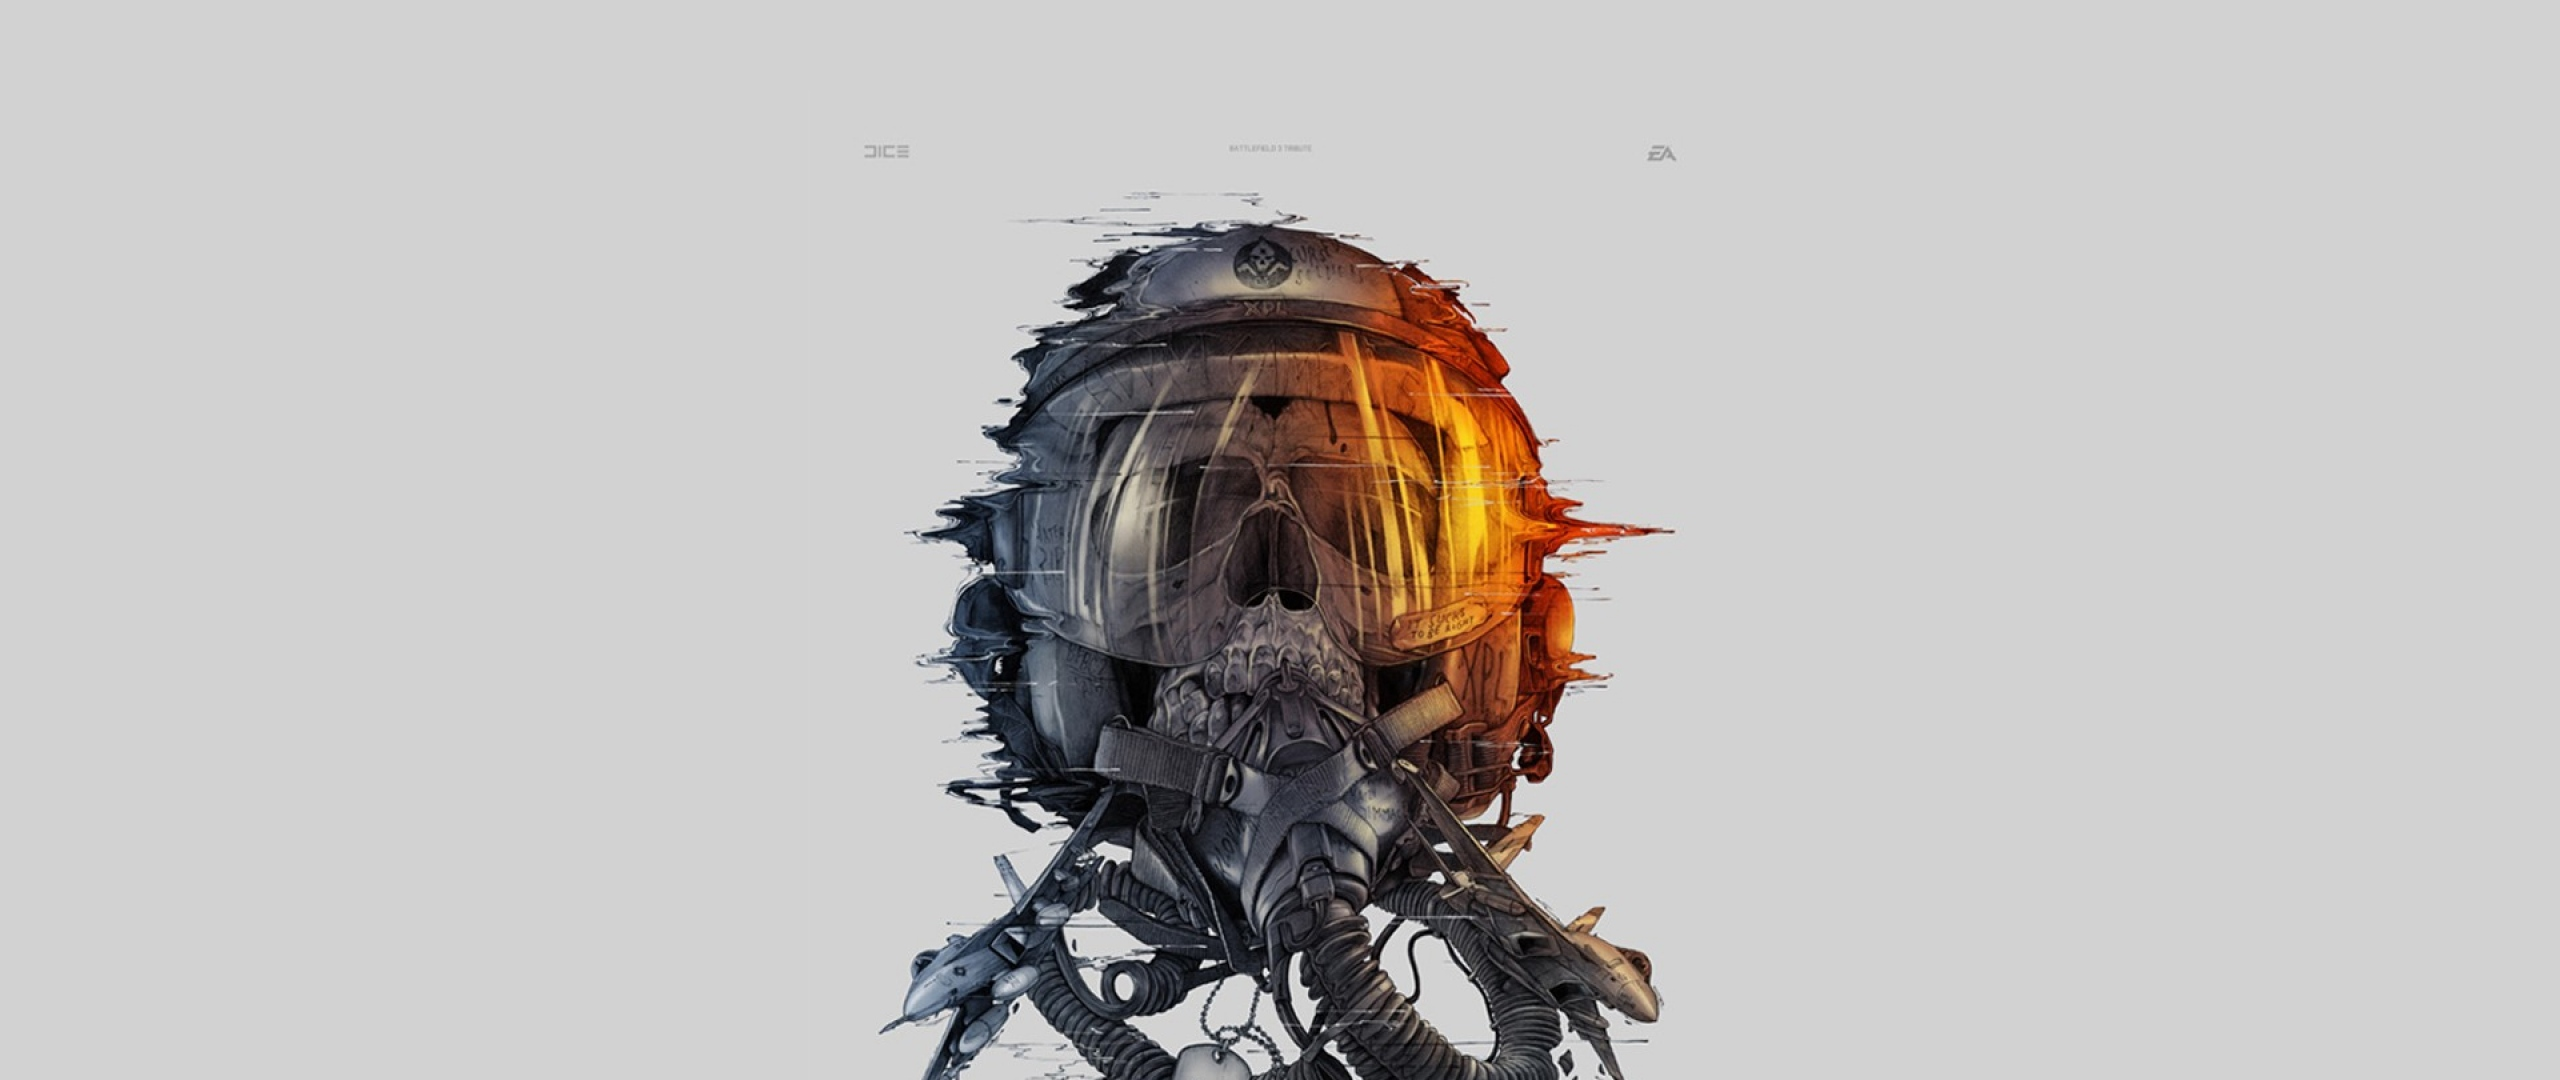 bf3 skull wallpaper - photo #24